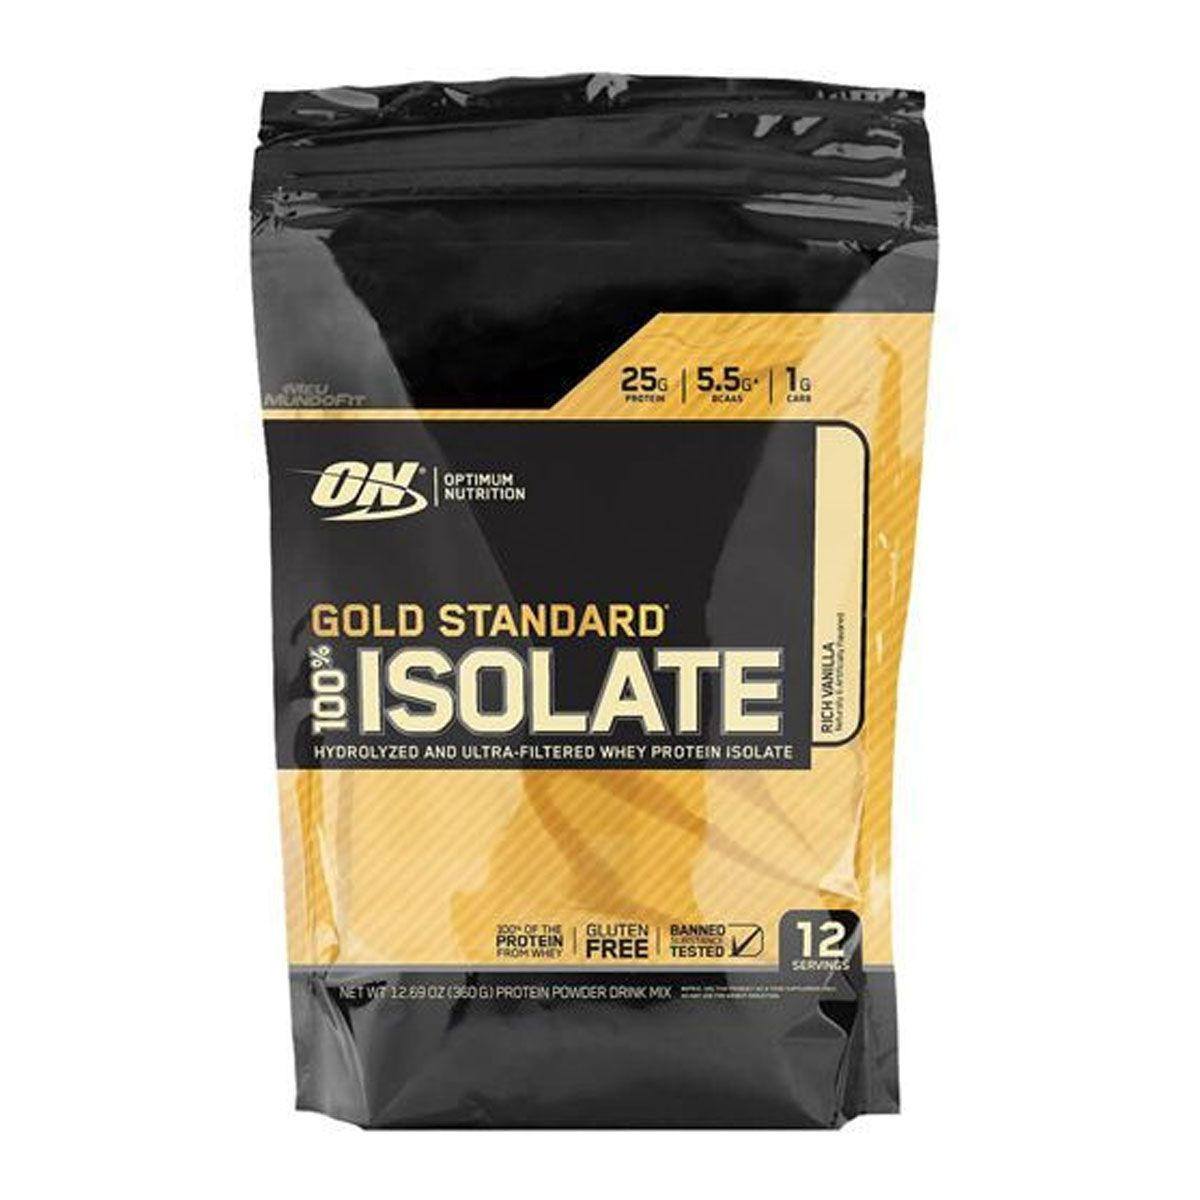 Gold Standard Isolate 360g - Optimum Nutrition